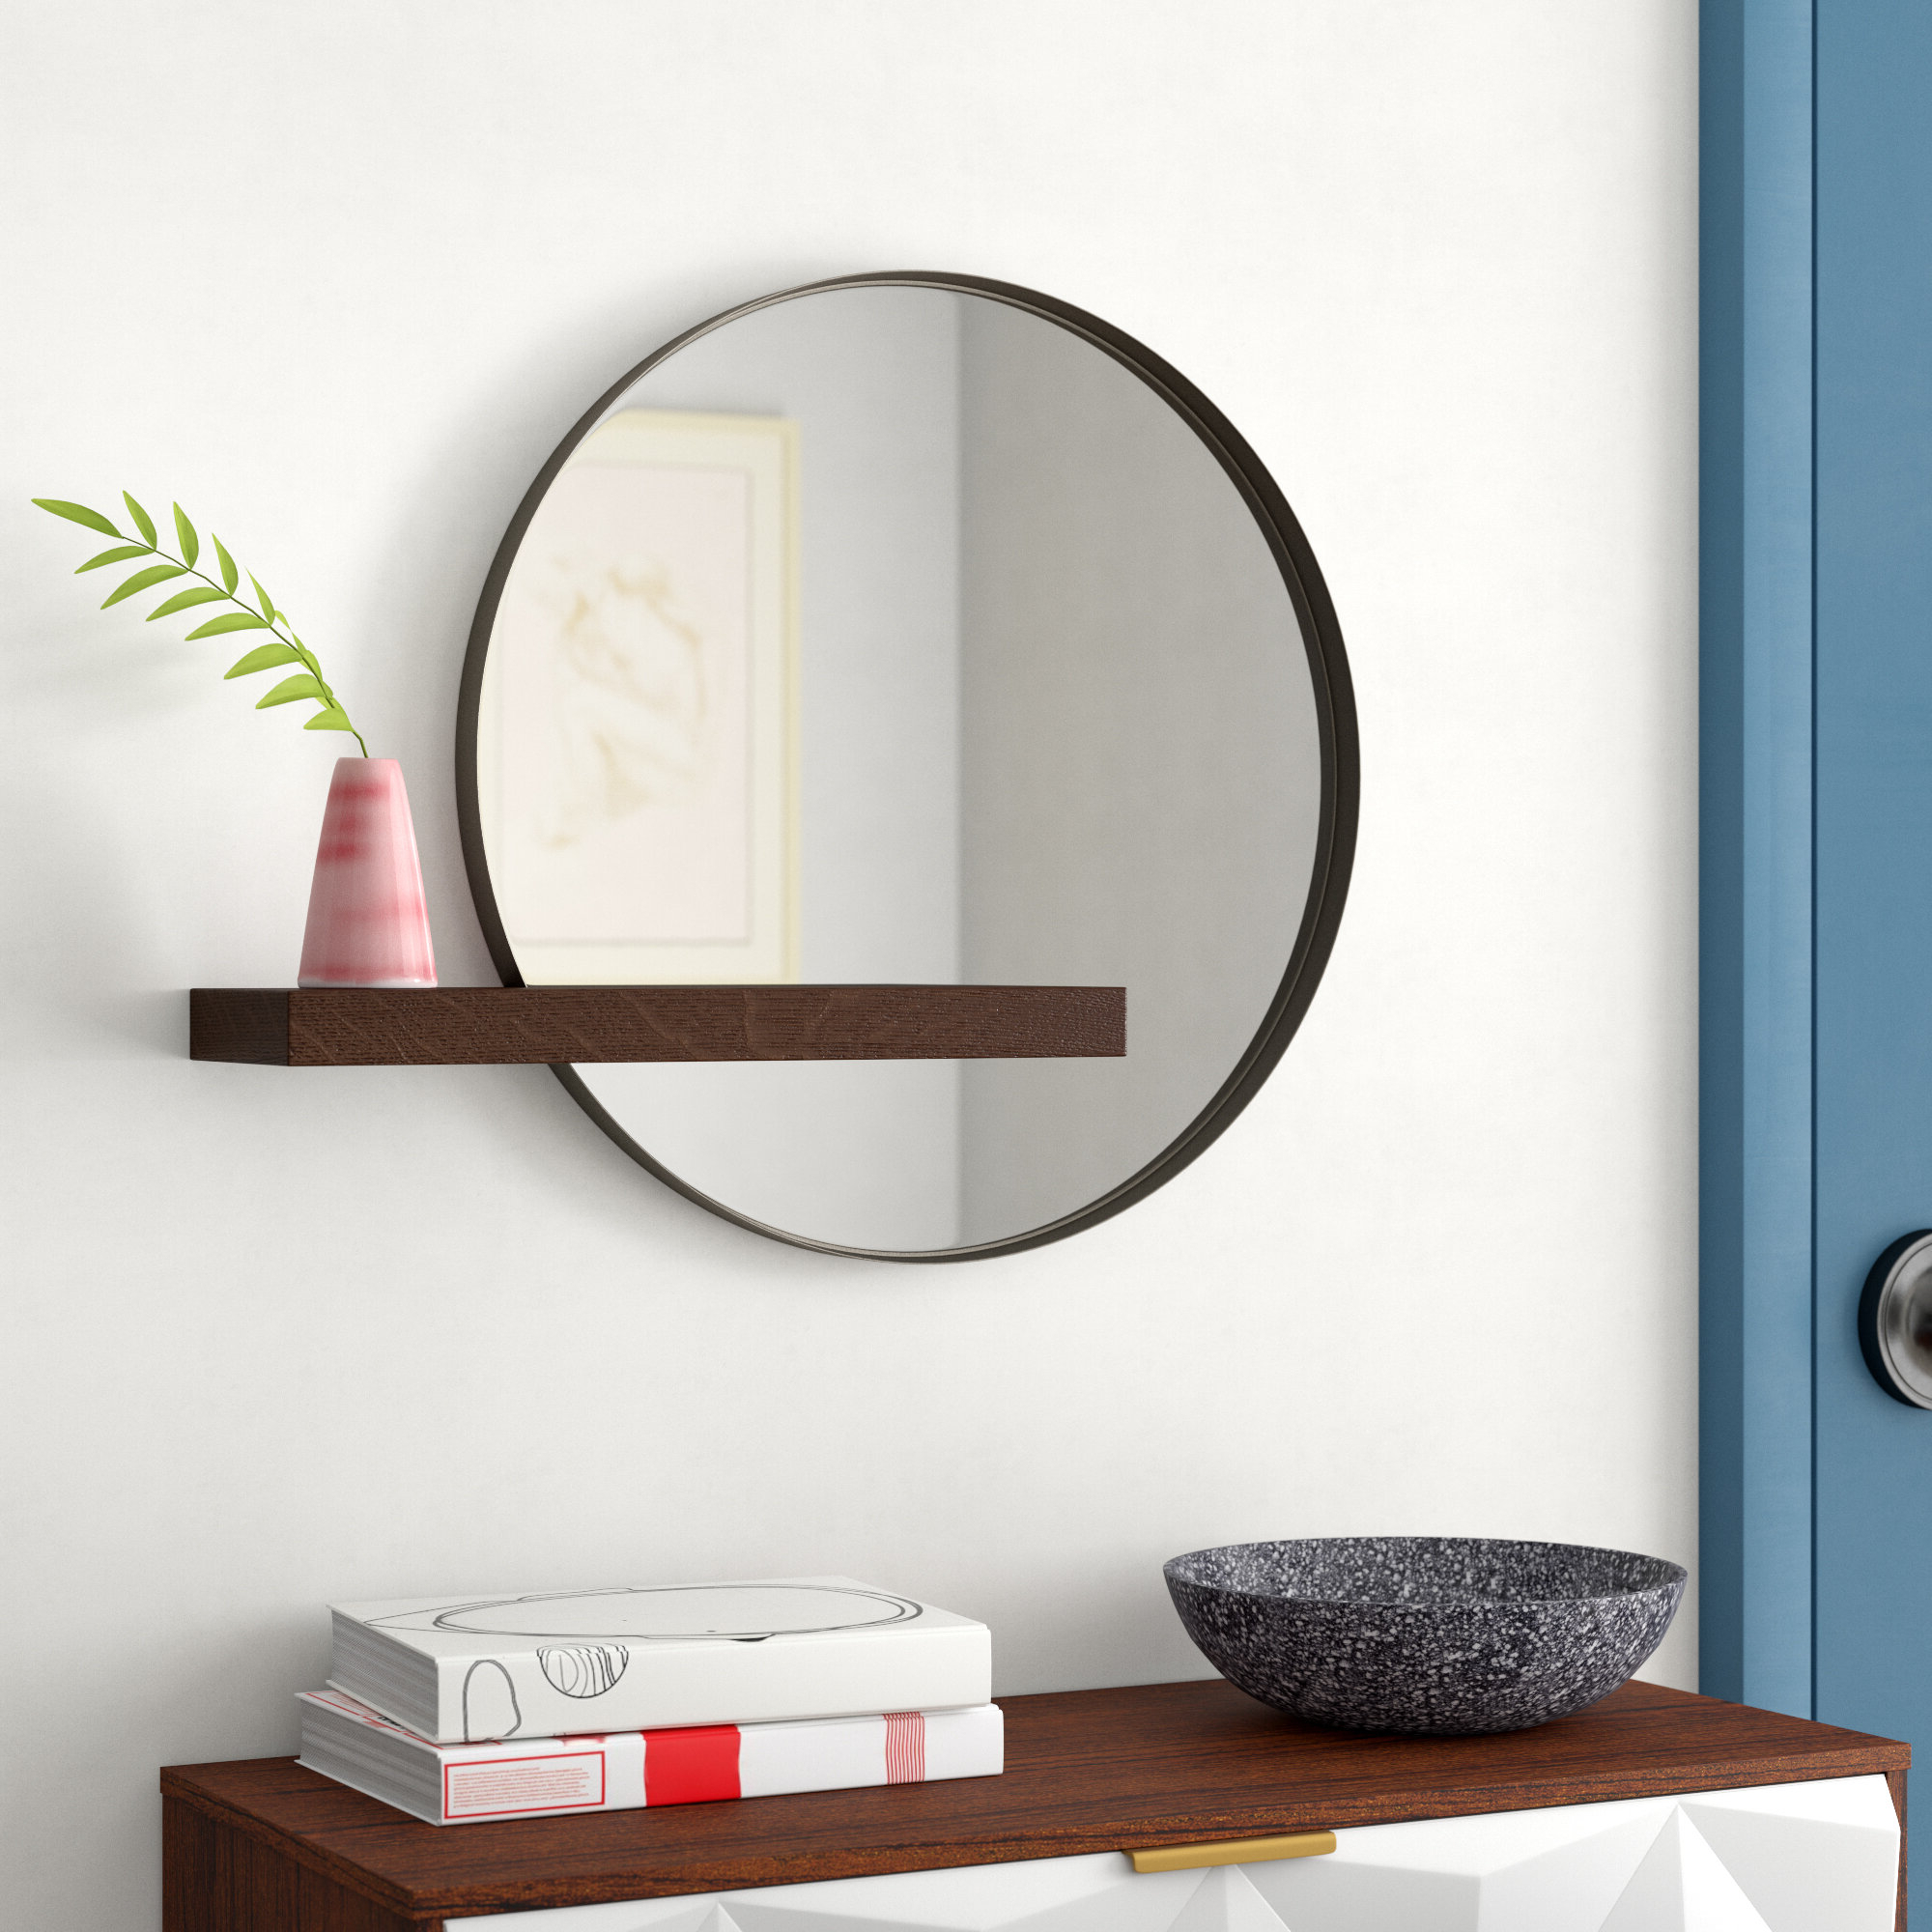 Seibert Round With Shelves Accent Mirror Throughout Recent Swagger Accent Wall Mirrors (View 7 of 20)